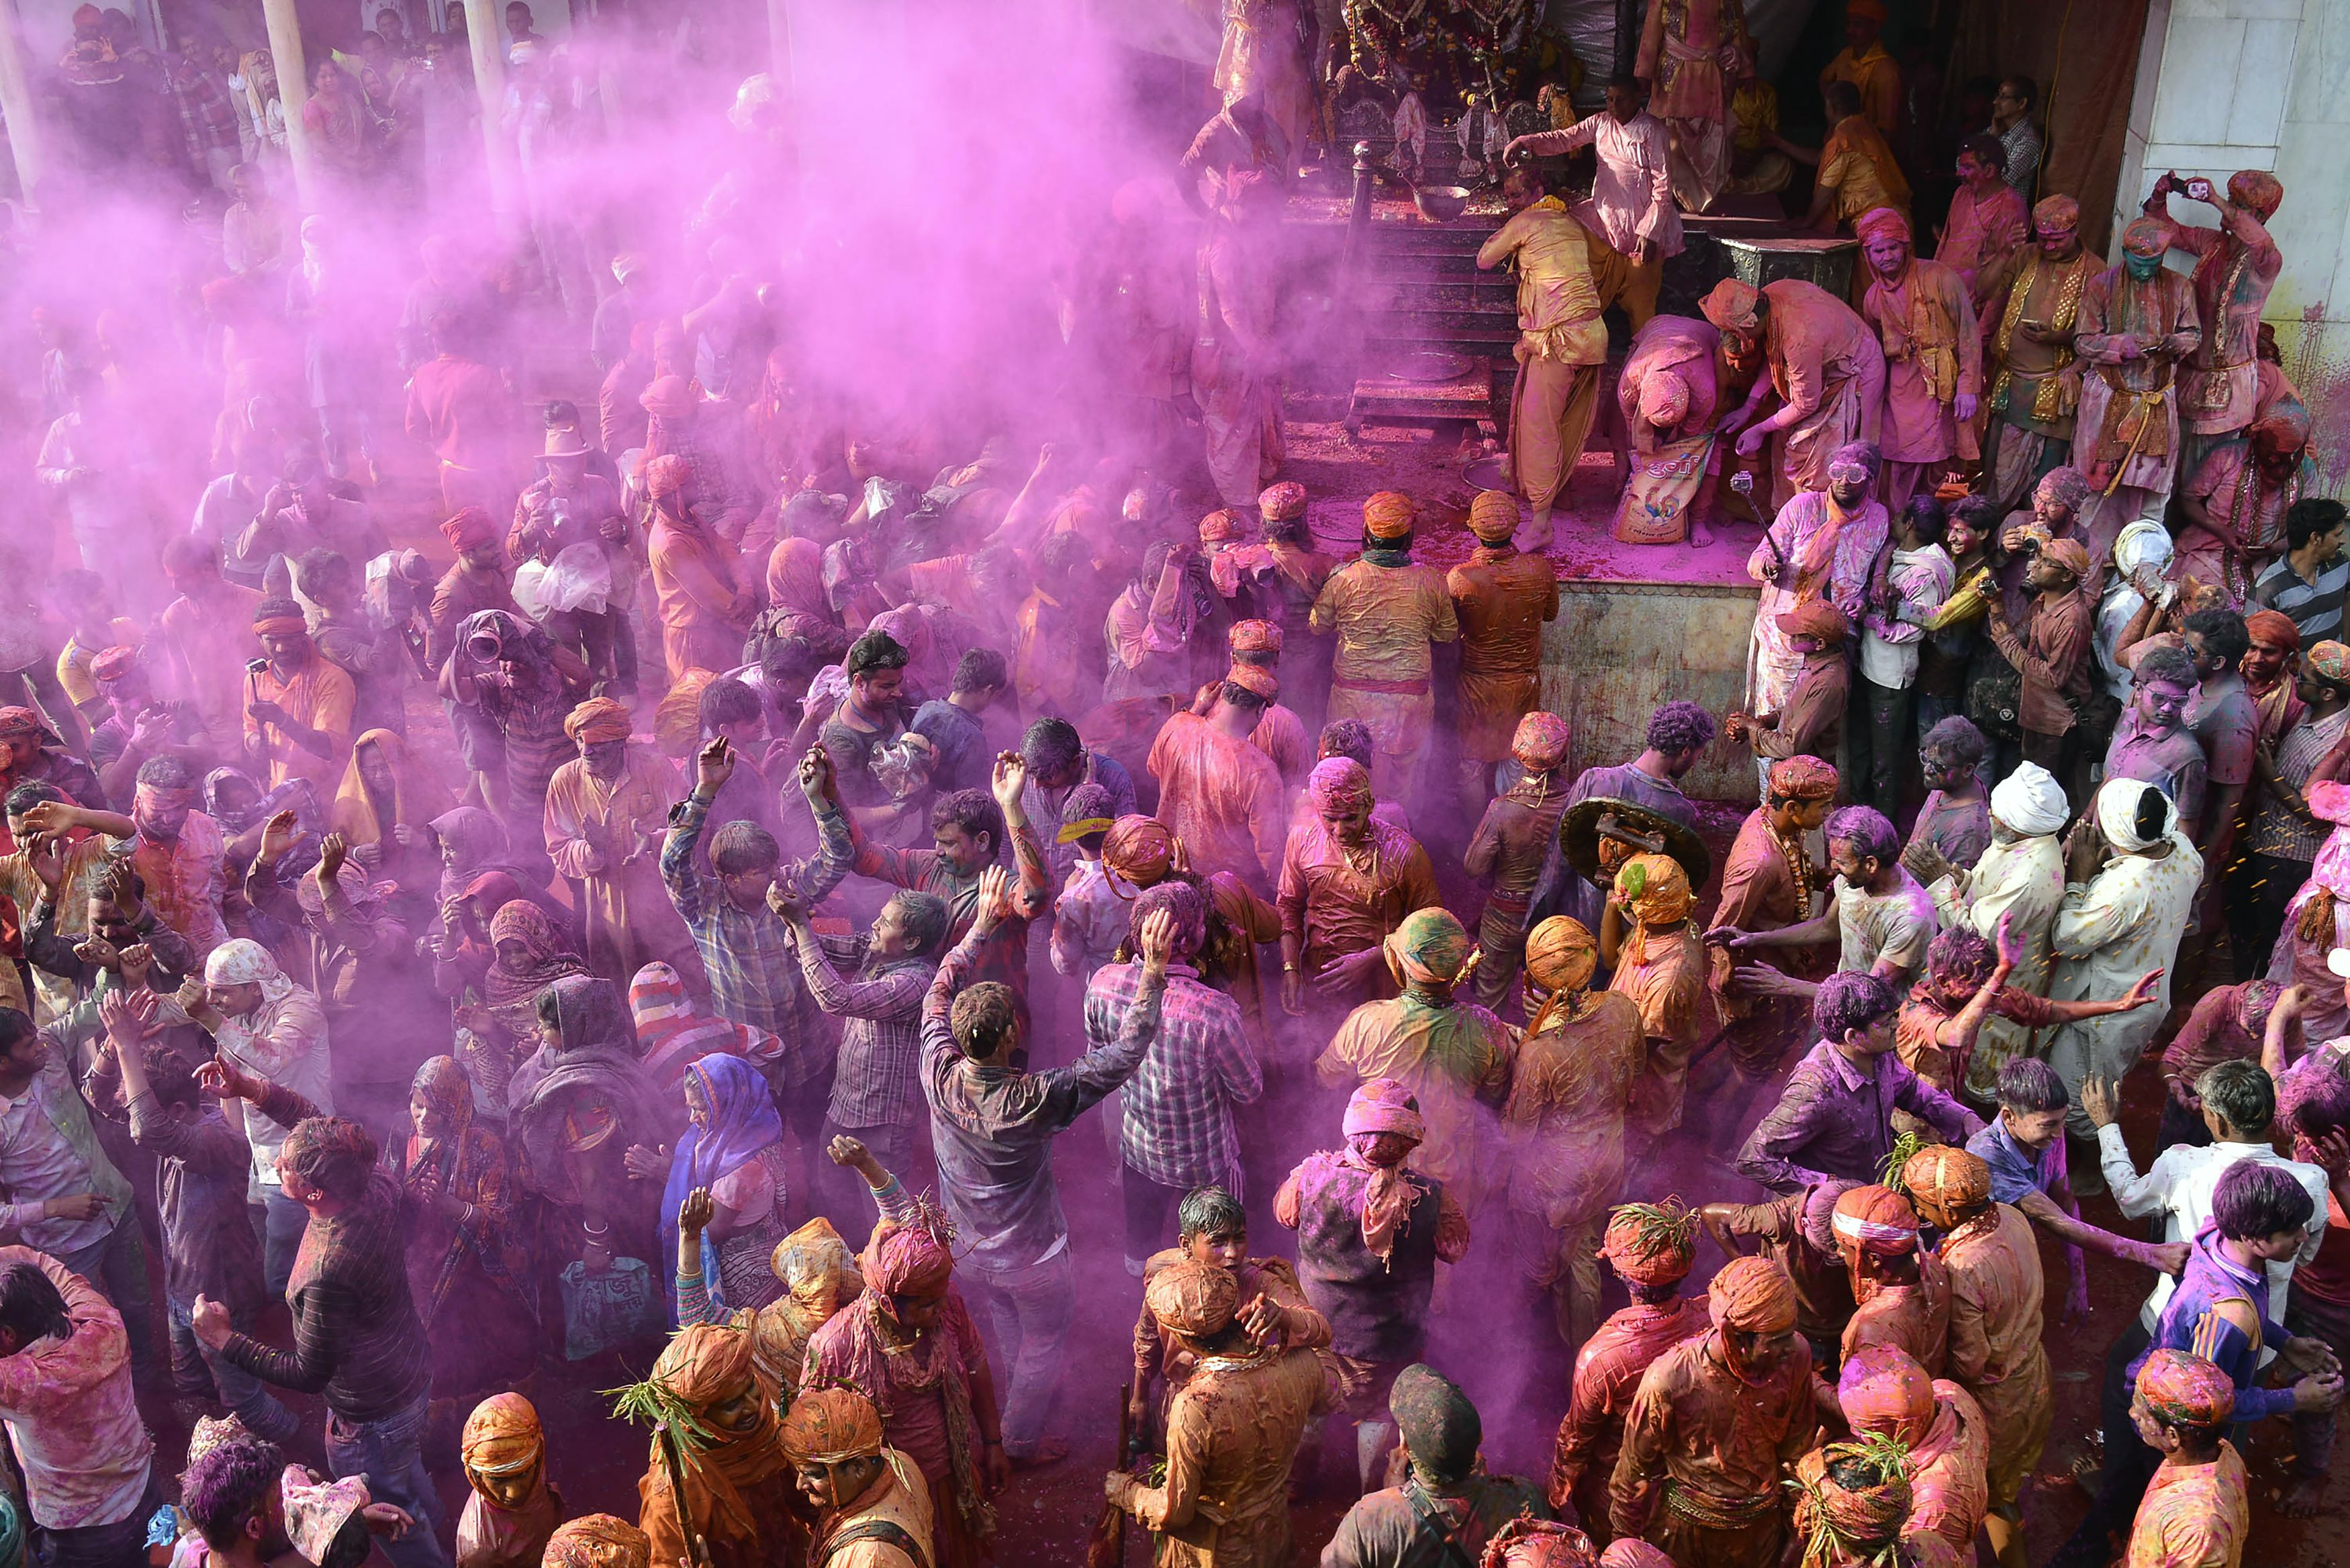 Indian Hindu devotees celebrate Holi, the spring festival of colours, during a traditional gathering at Nandgaon village in Uttar Pradesh state on March 7, 2017.